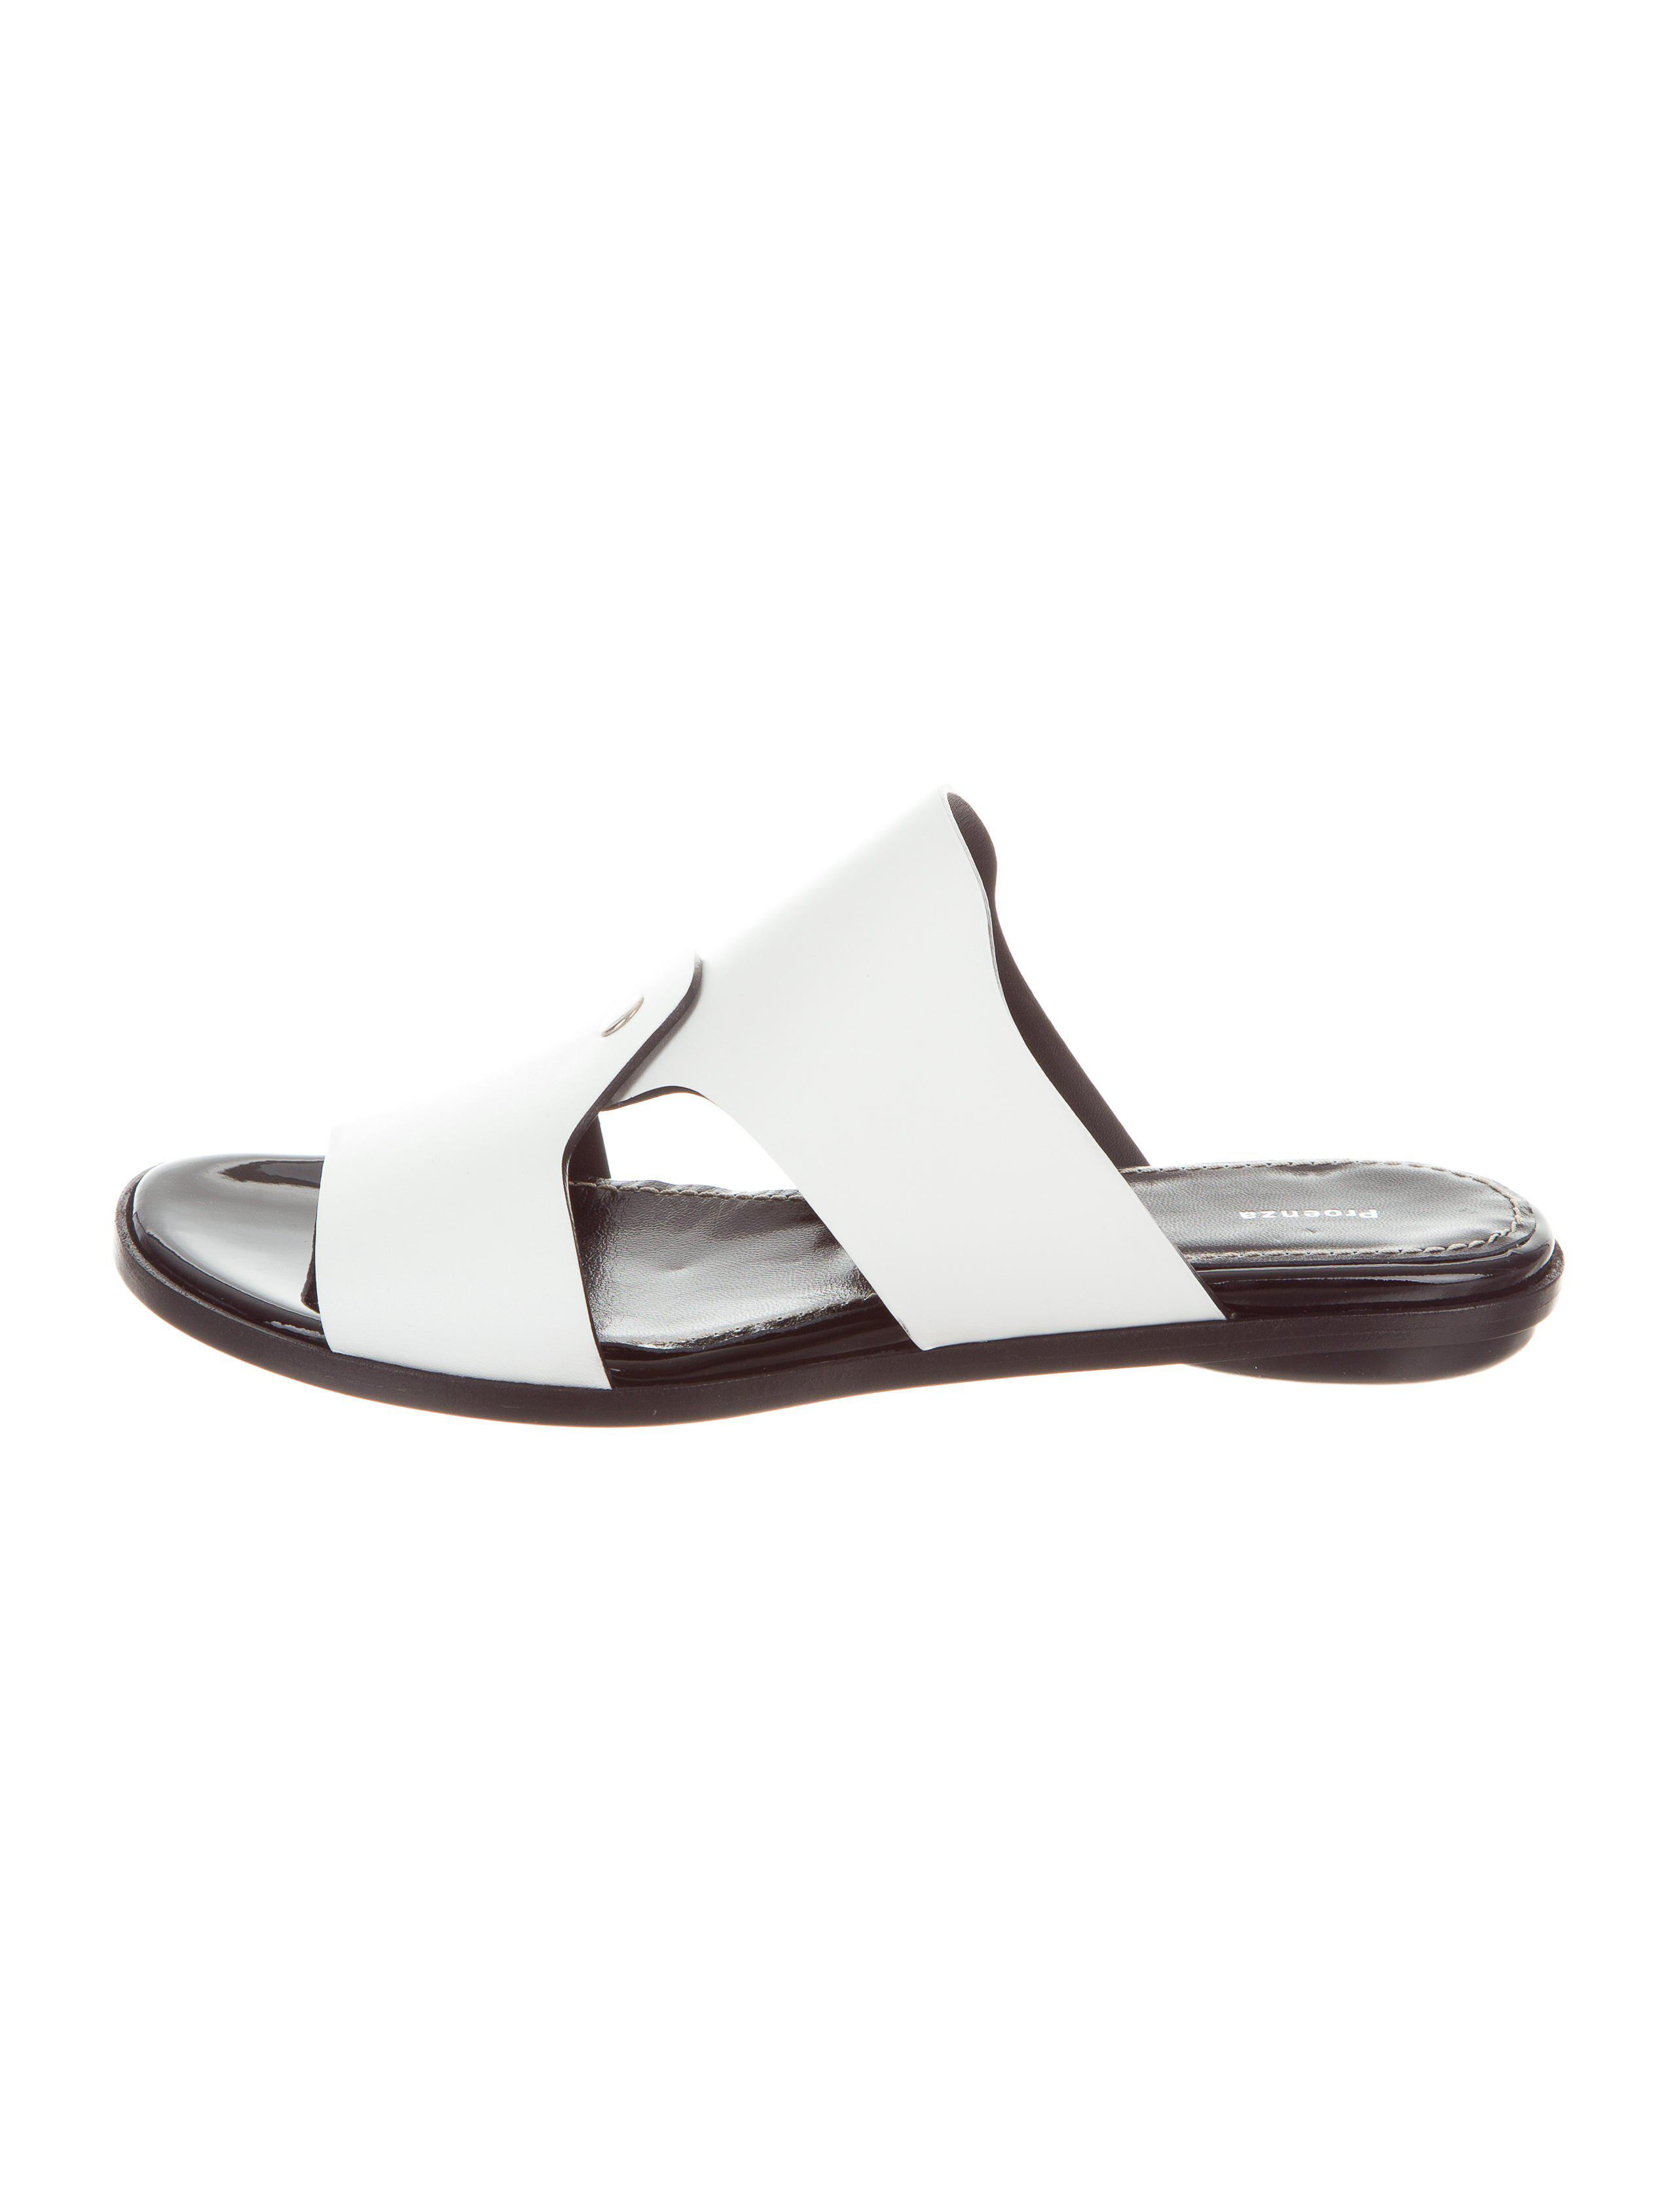 genuine cheap price sale cost Proenza Schouler Leather Slide Sandals w/ Tags discount marketable the cheapest woVPMM